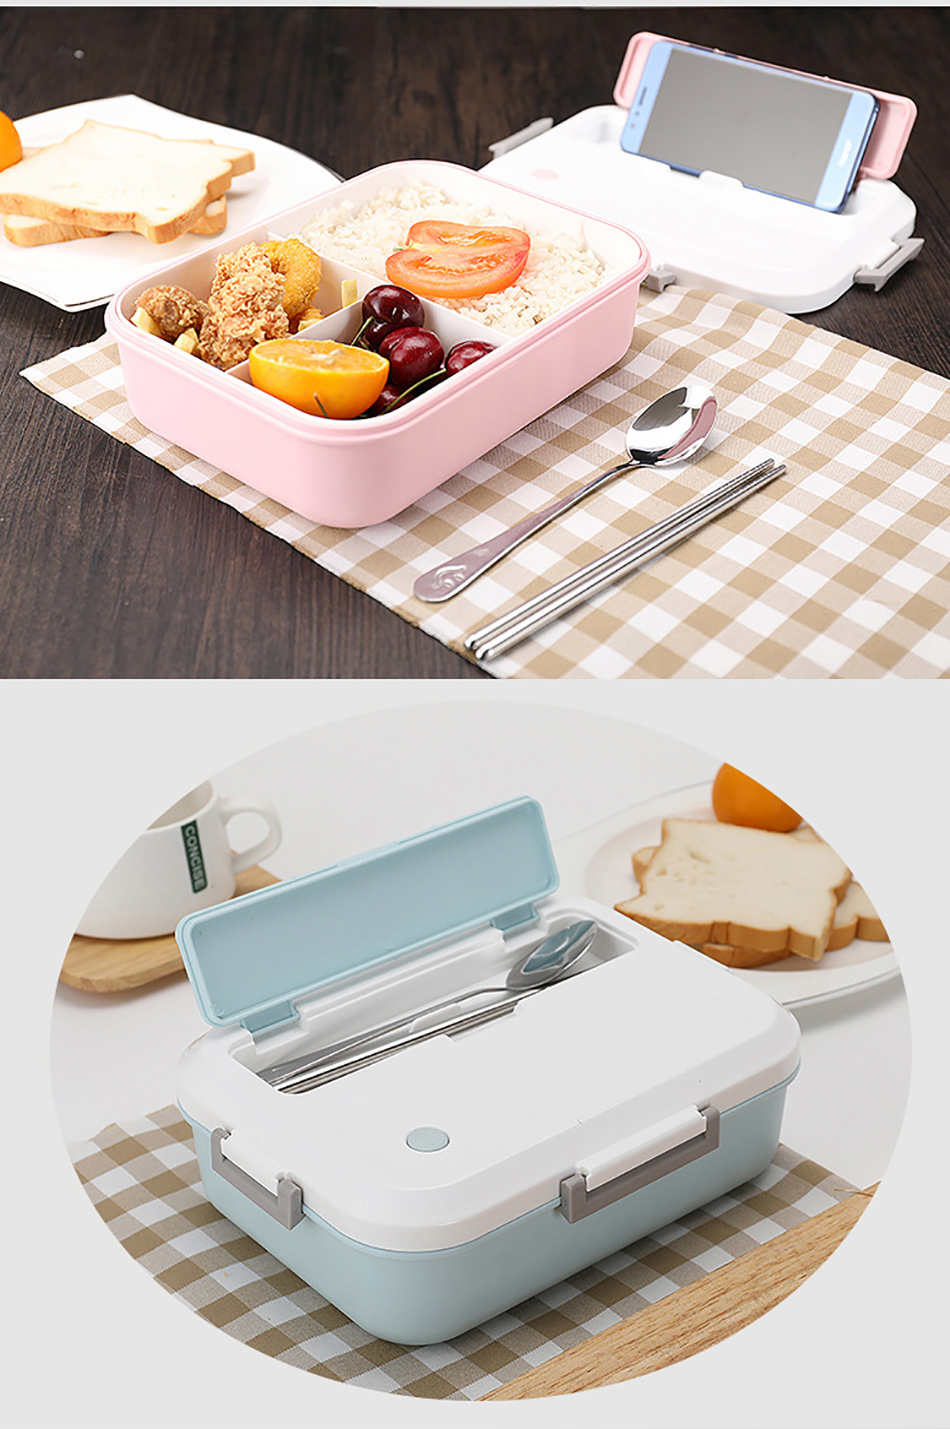 ONEUP Lunch Box BPA FREE Eco-Friendly Food Container With Tableware Microwavable Bento Box for kids adult school Office picnic 11